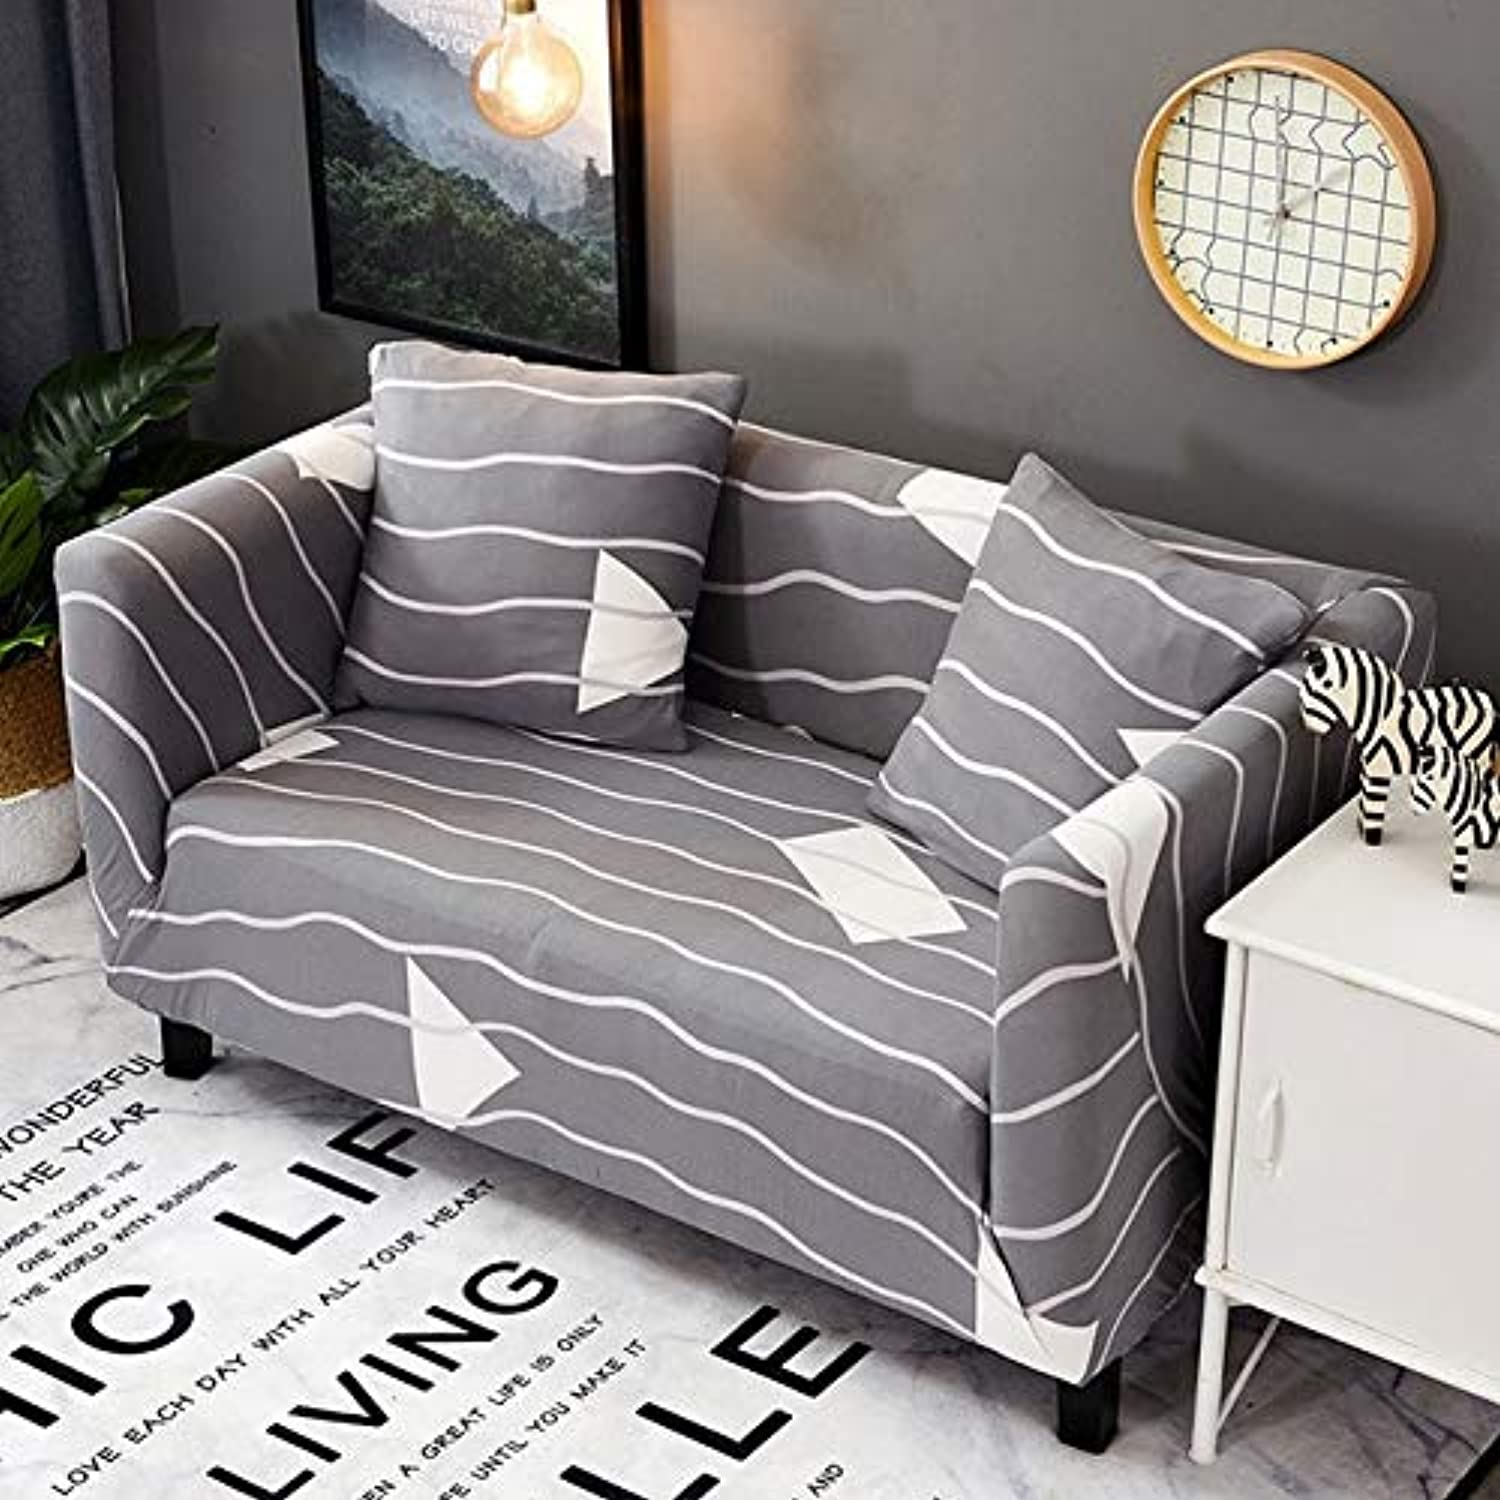 Tight Wrap All-Inclusive Sofa Cover Sectional Elastic Modern Furniture Couch Cover Universal Stretch Corner Slipcover 1PC   color 19, 1seater 90-140cm